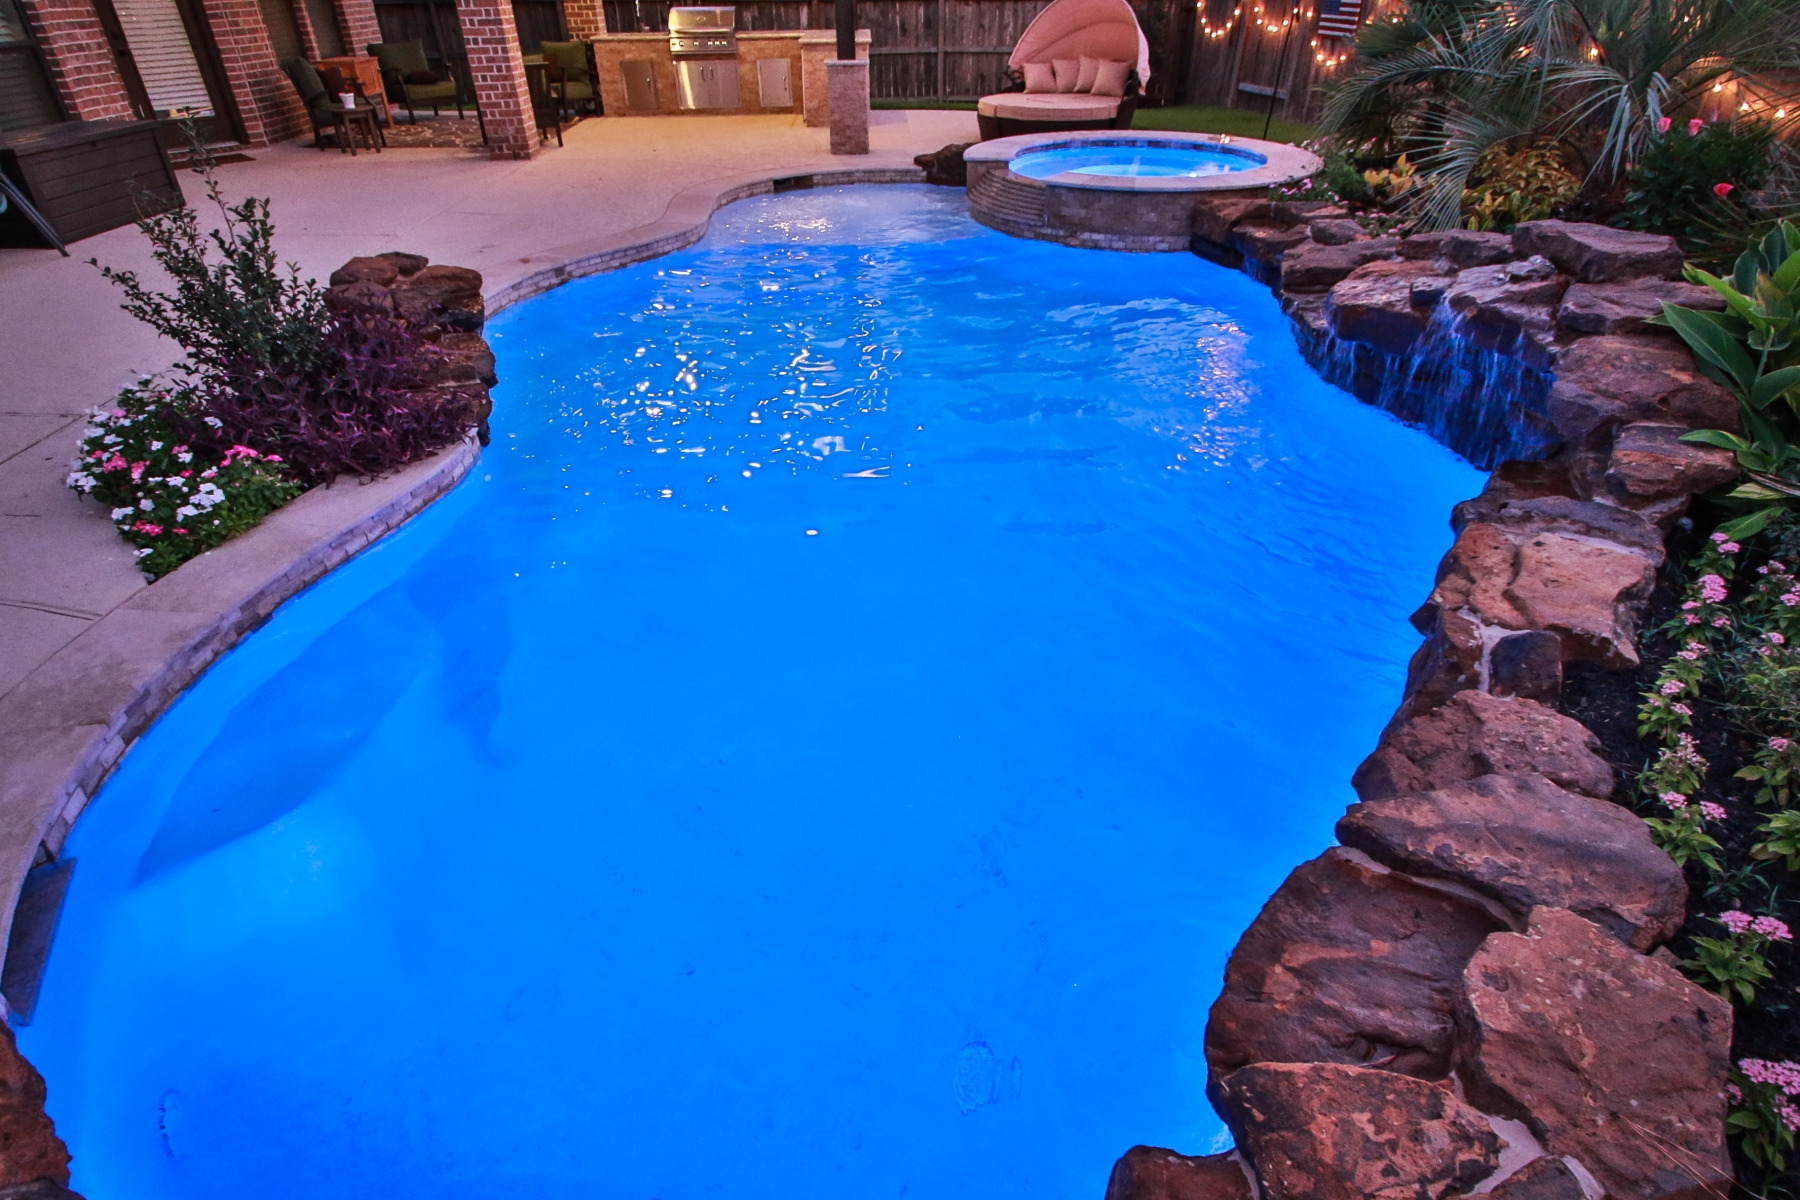 Freeform Pool at Night with Custom Lighting, Spa & Waterfall